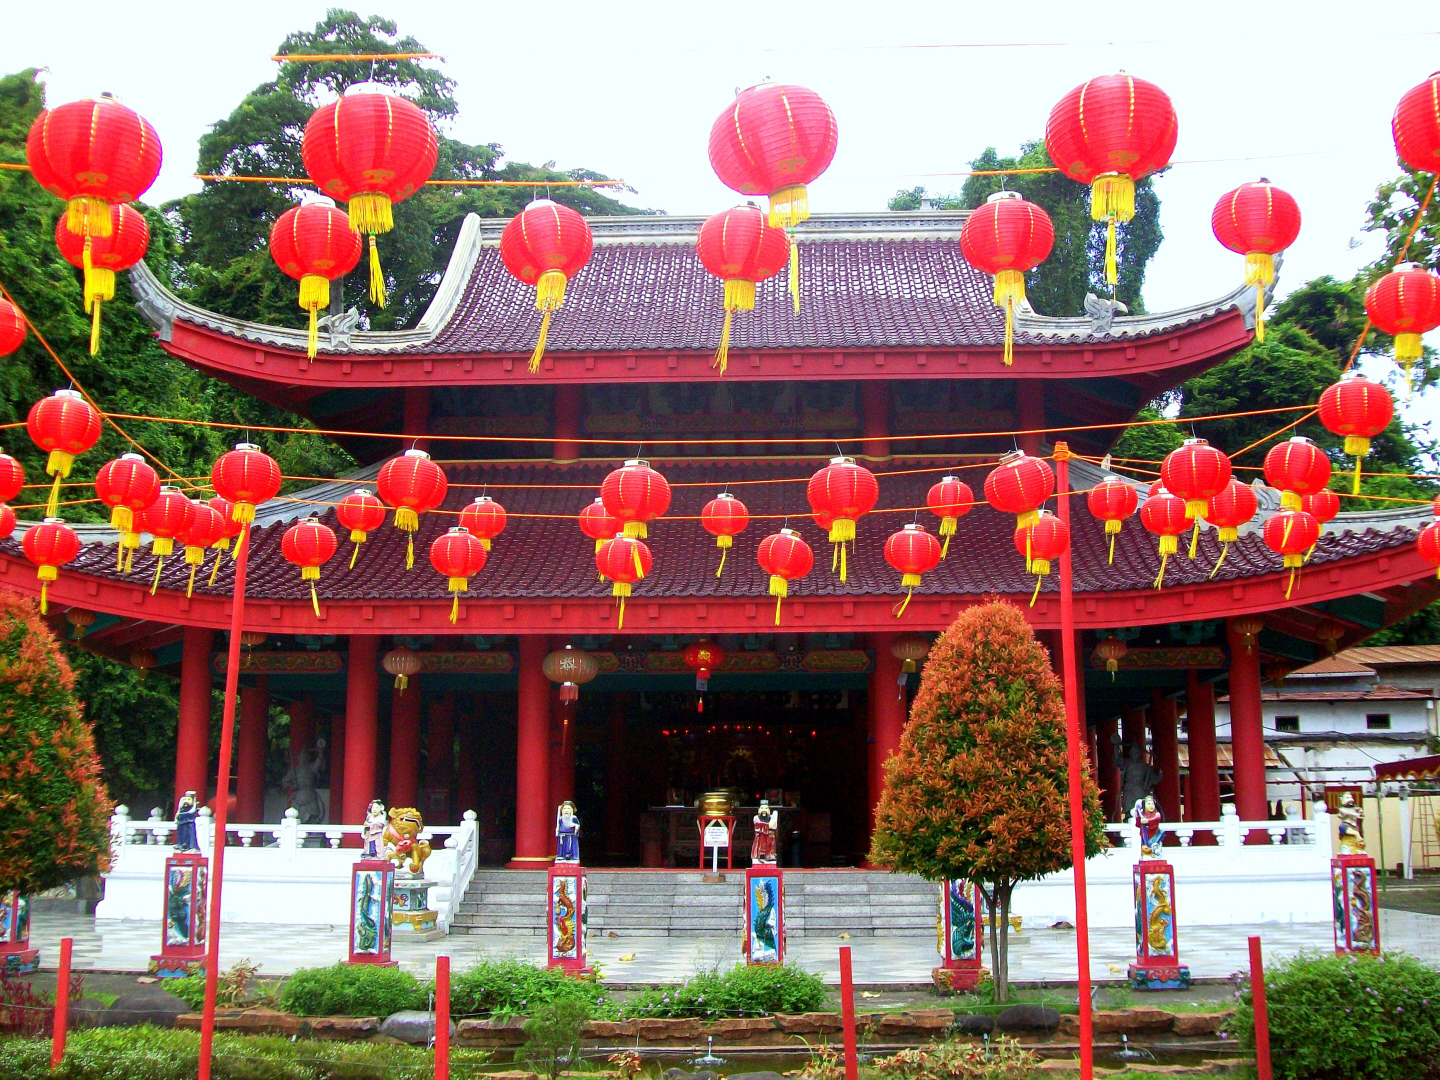 One of the Chinese Temples at the Sam Po Complex in Semarang, Java